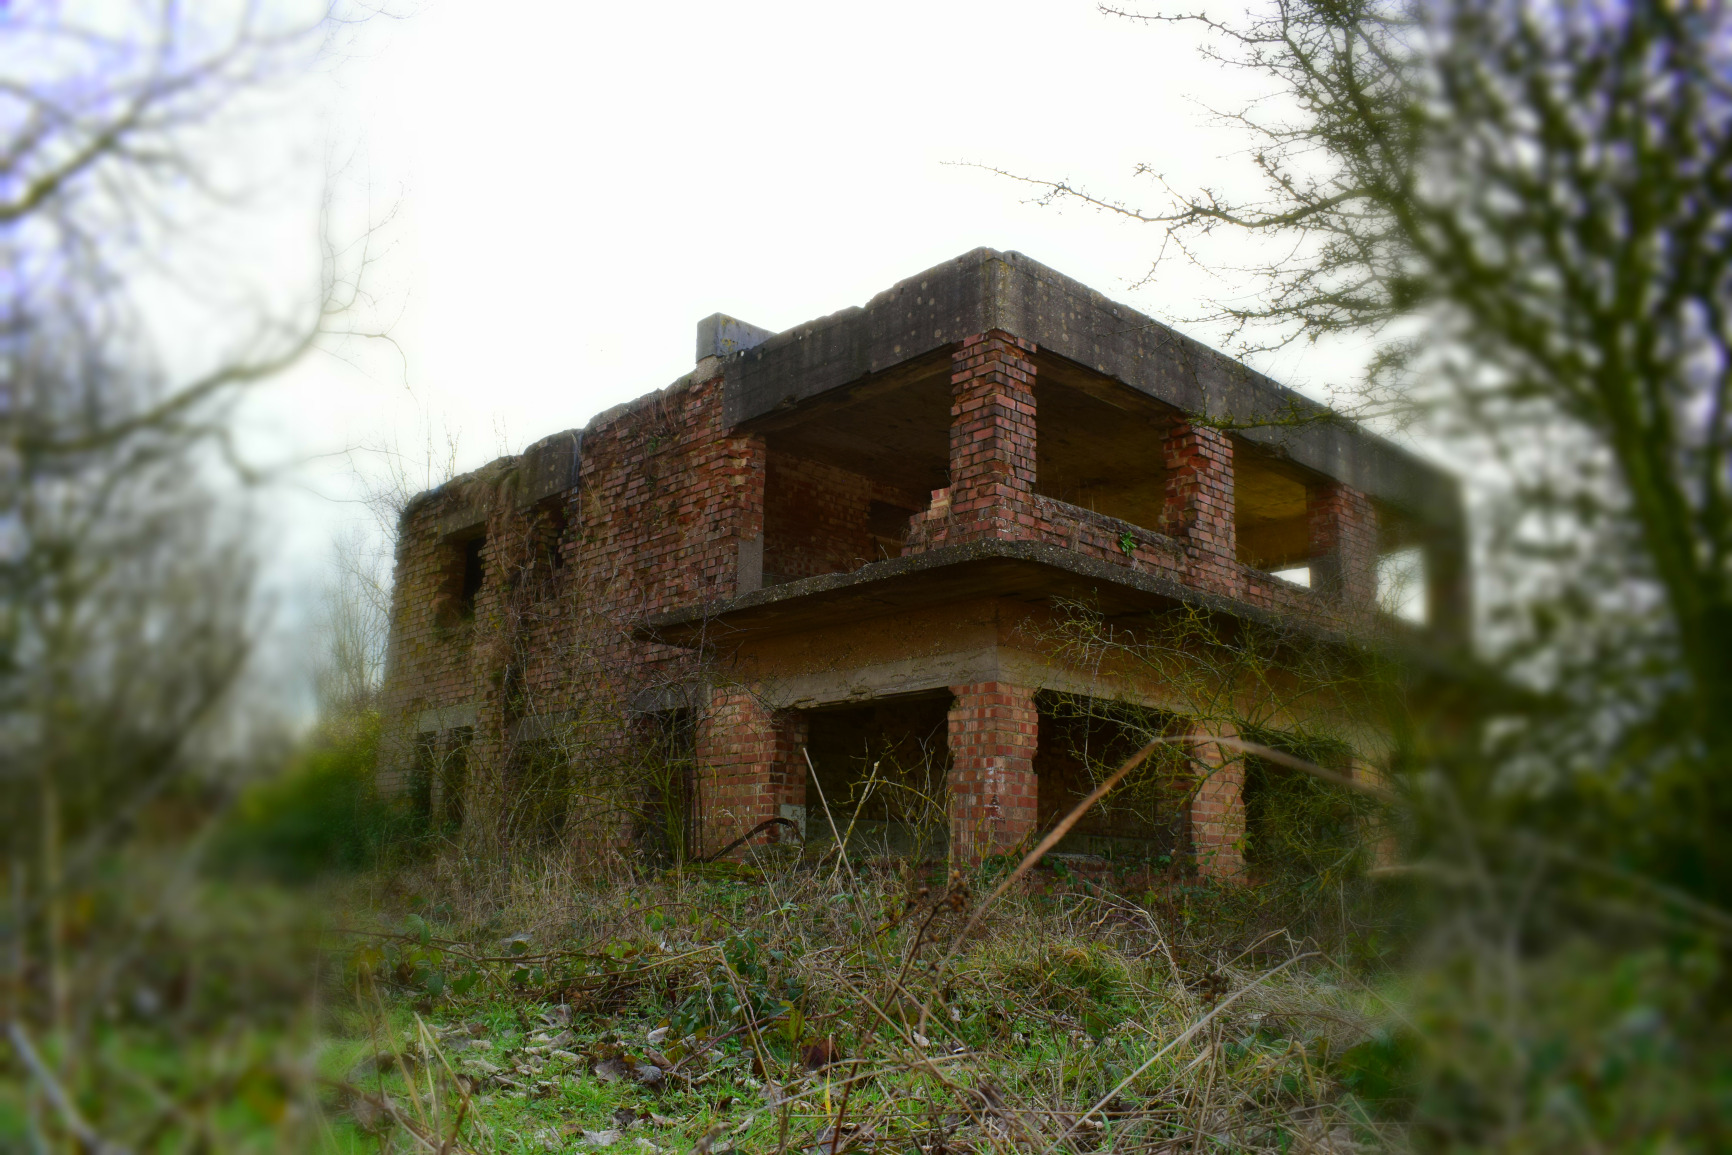 RAF Kings Cliffe control tower up close.